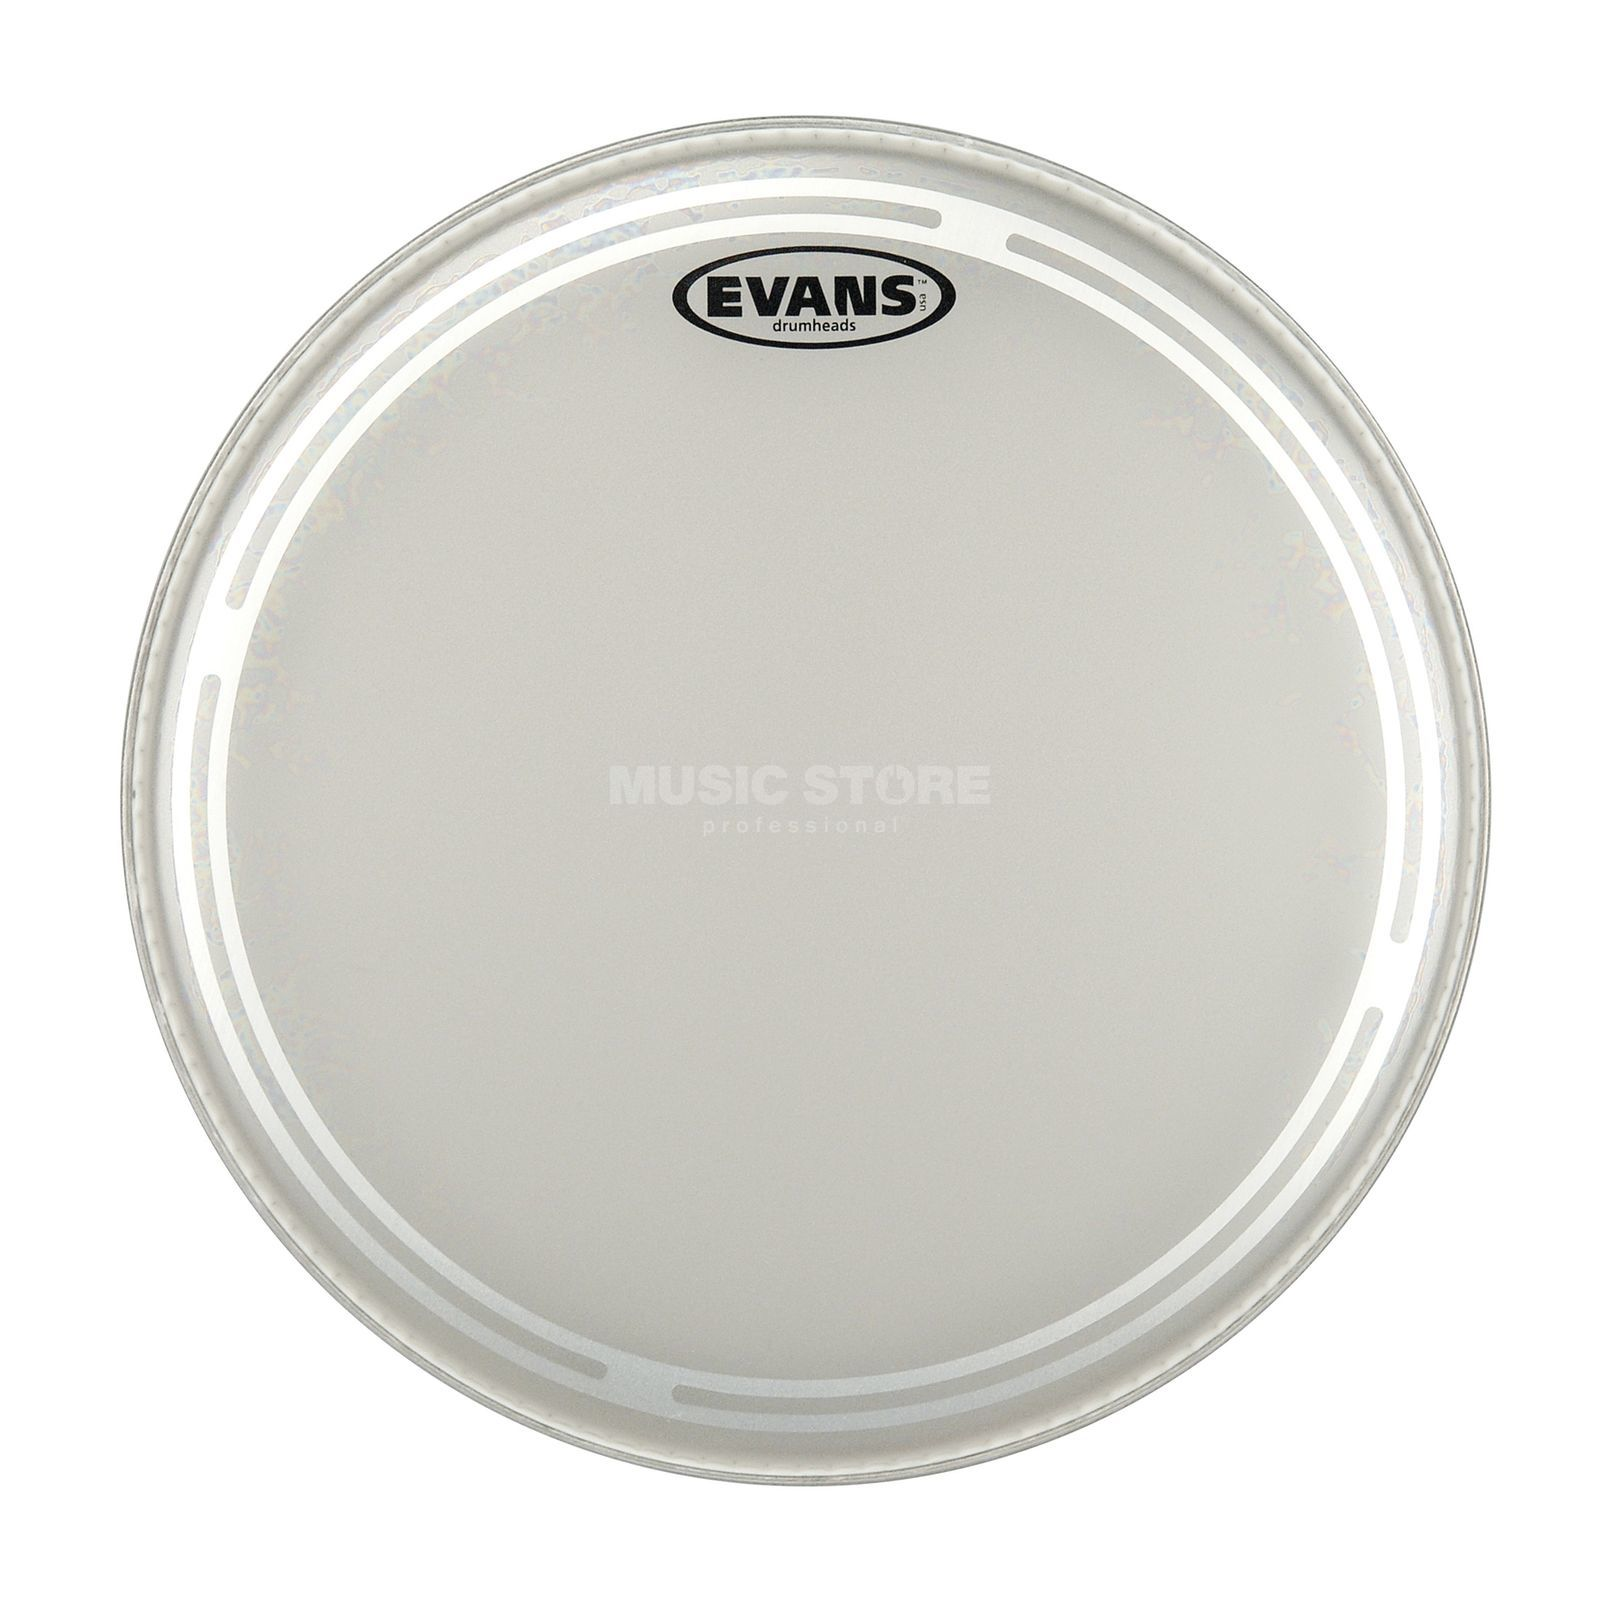 "Evans EC2, 12"", coated, Tom Batter Head,  B-Stock Zdjęcie produktu"